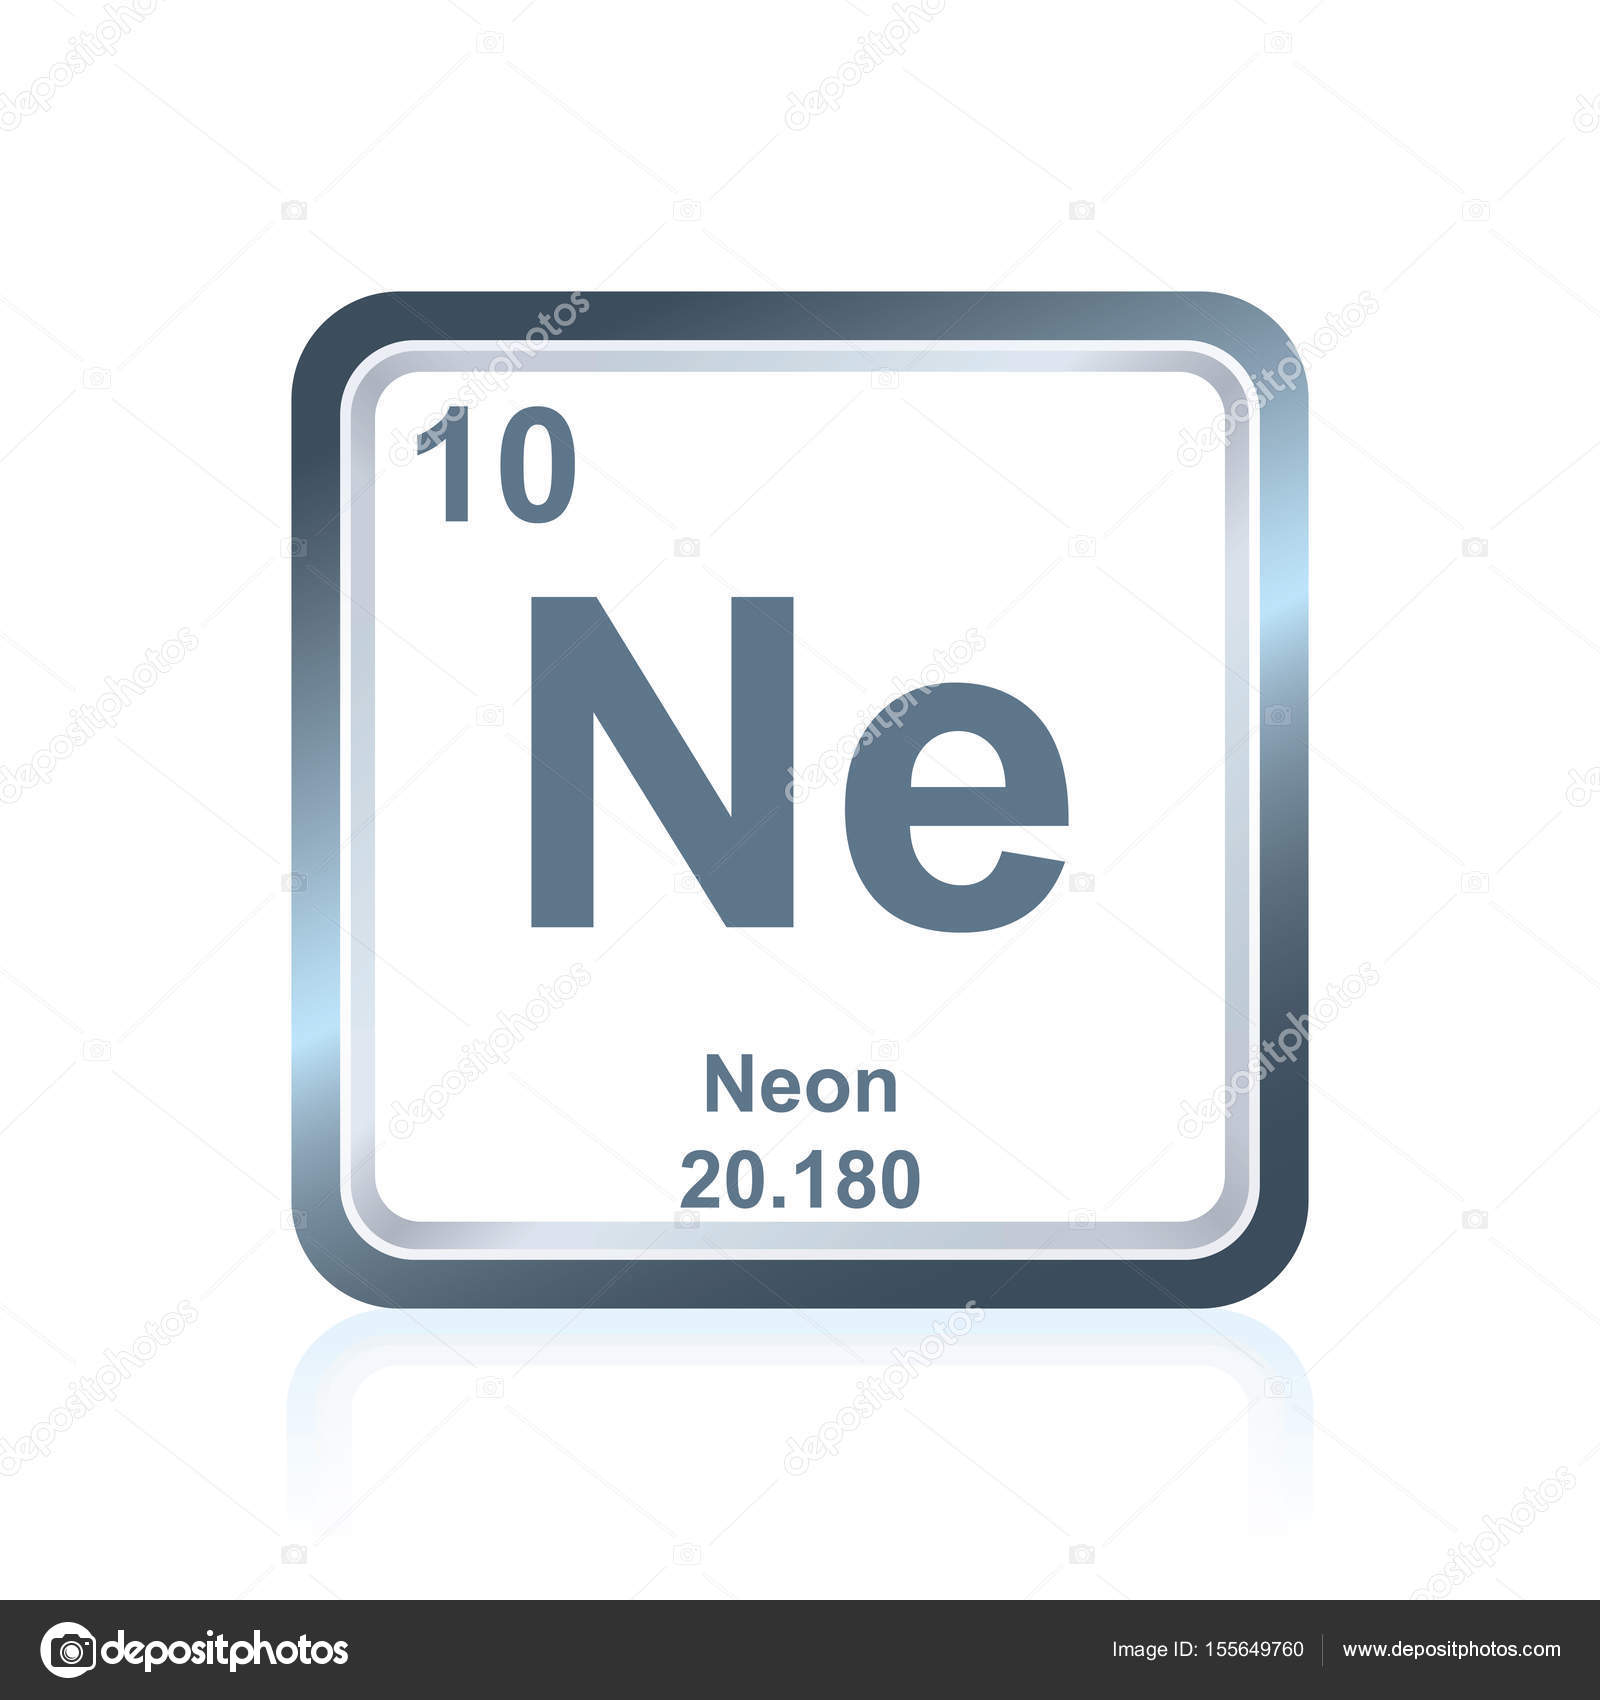 chemical element neon from the periodic table stock vector - Periodic Table Neon